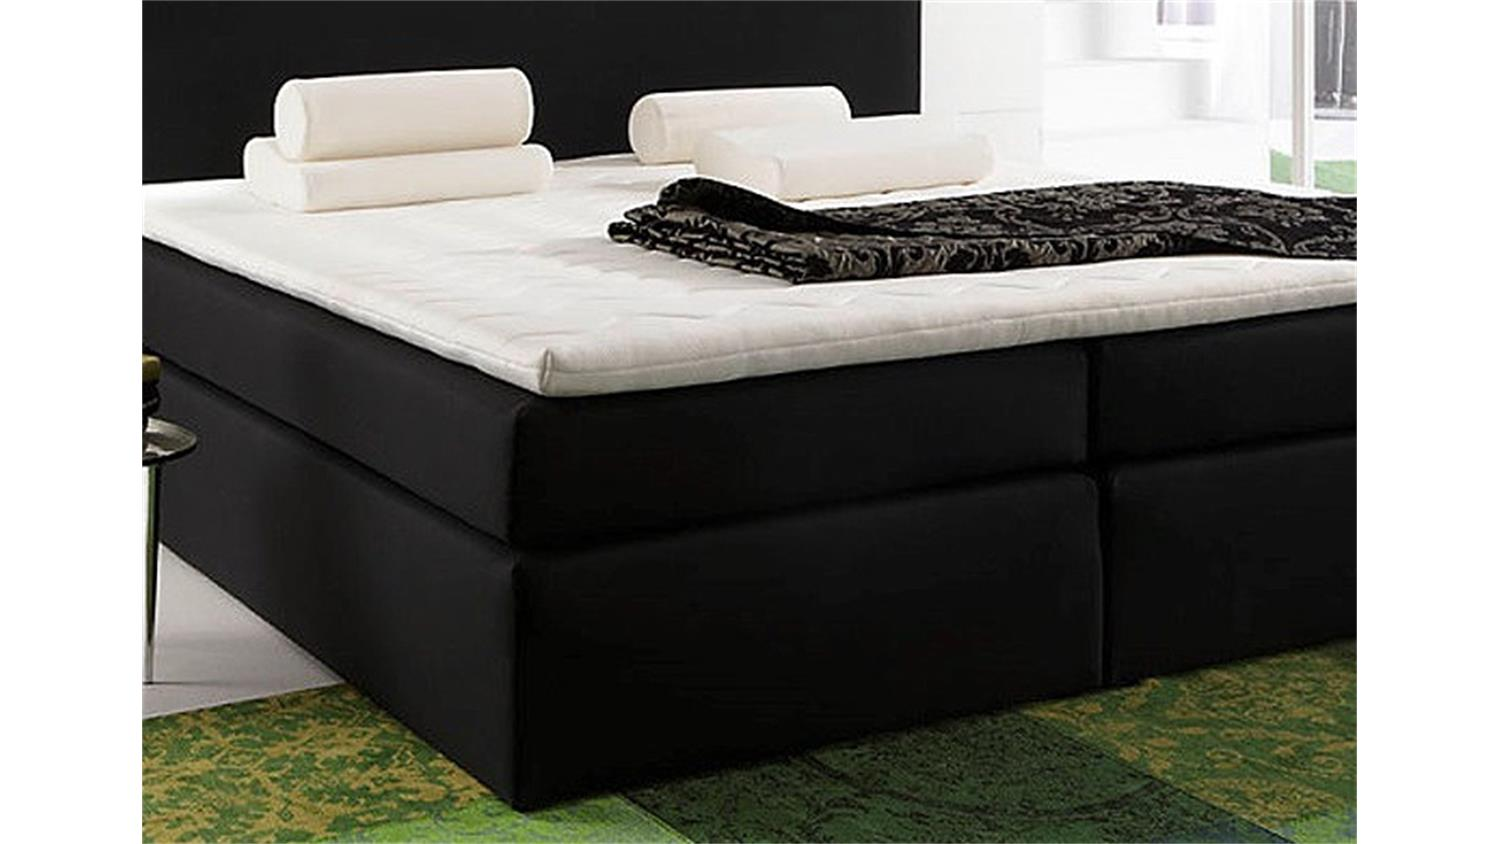 boxspringbett aufbauanleitung. Black Bedroom Furniture Sets. Home Design Ideas